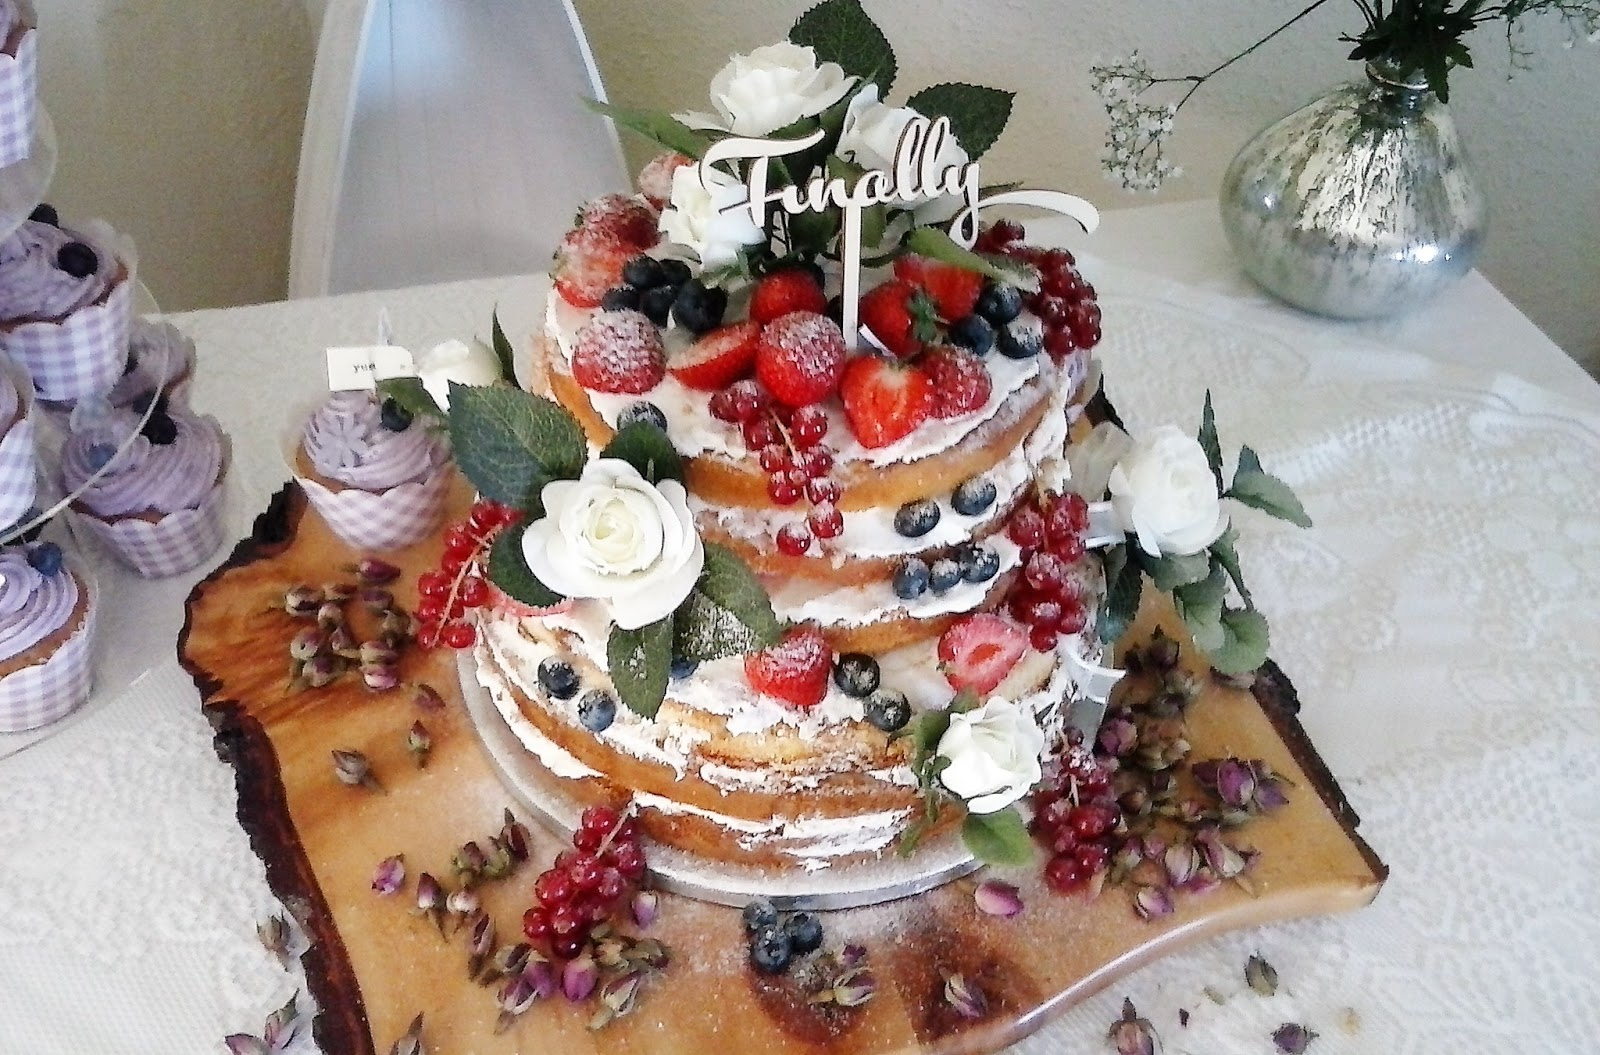 Kristys Bakery Naked Wedding Cakes At Kristys Bakery Swansea - Wedding Cake Swansea